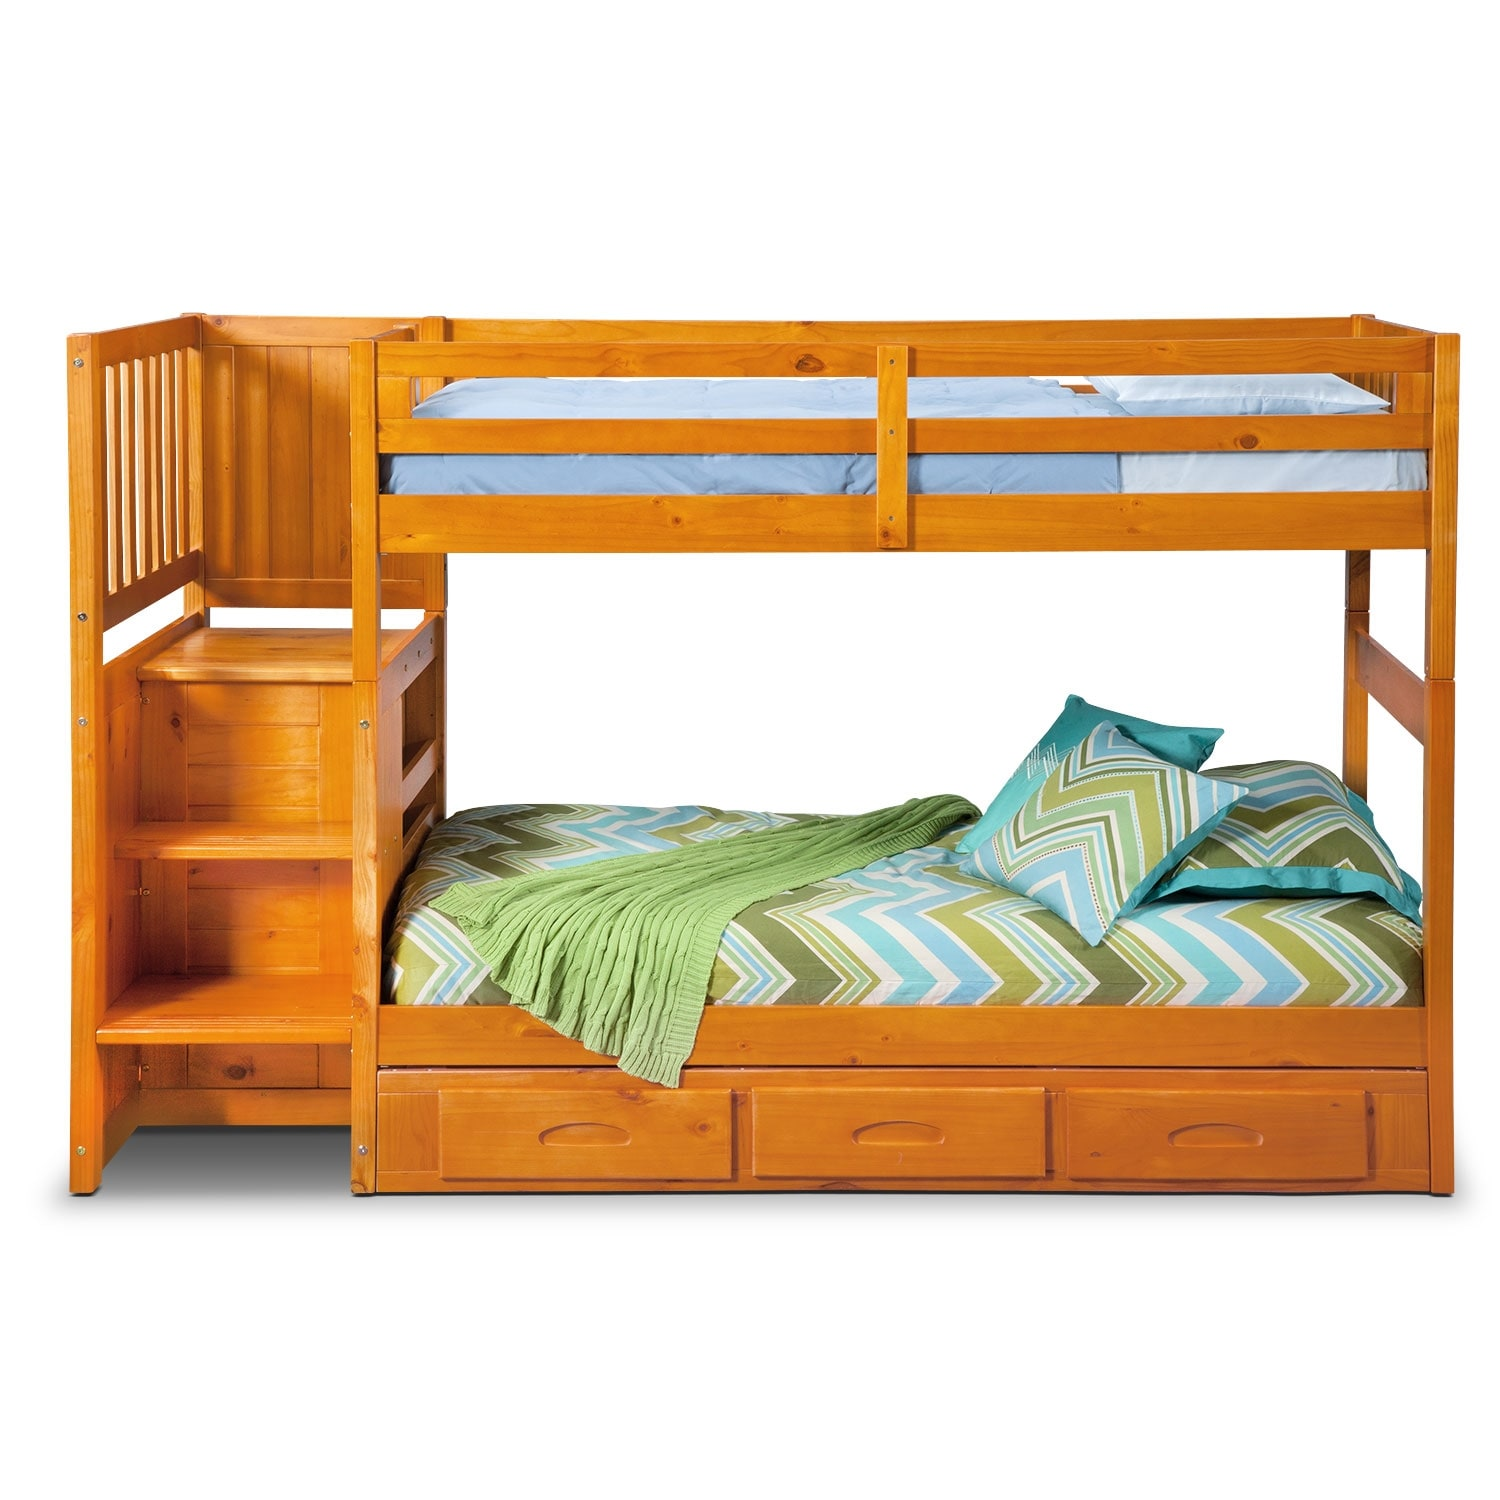 Ranger twin over twin bunk bed with storage stairs underbed drawers value city furniture - Bunk bed with drawer steps ...